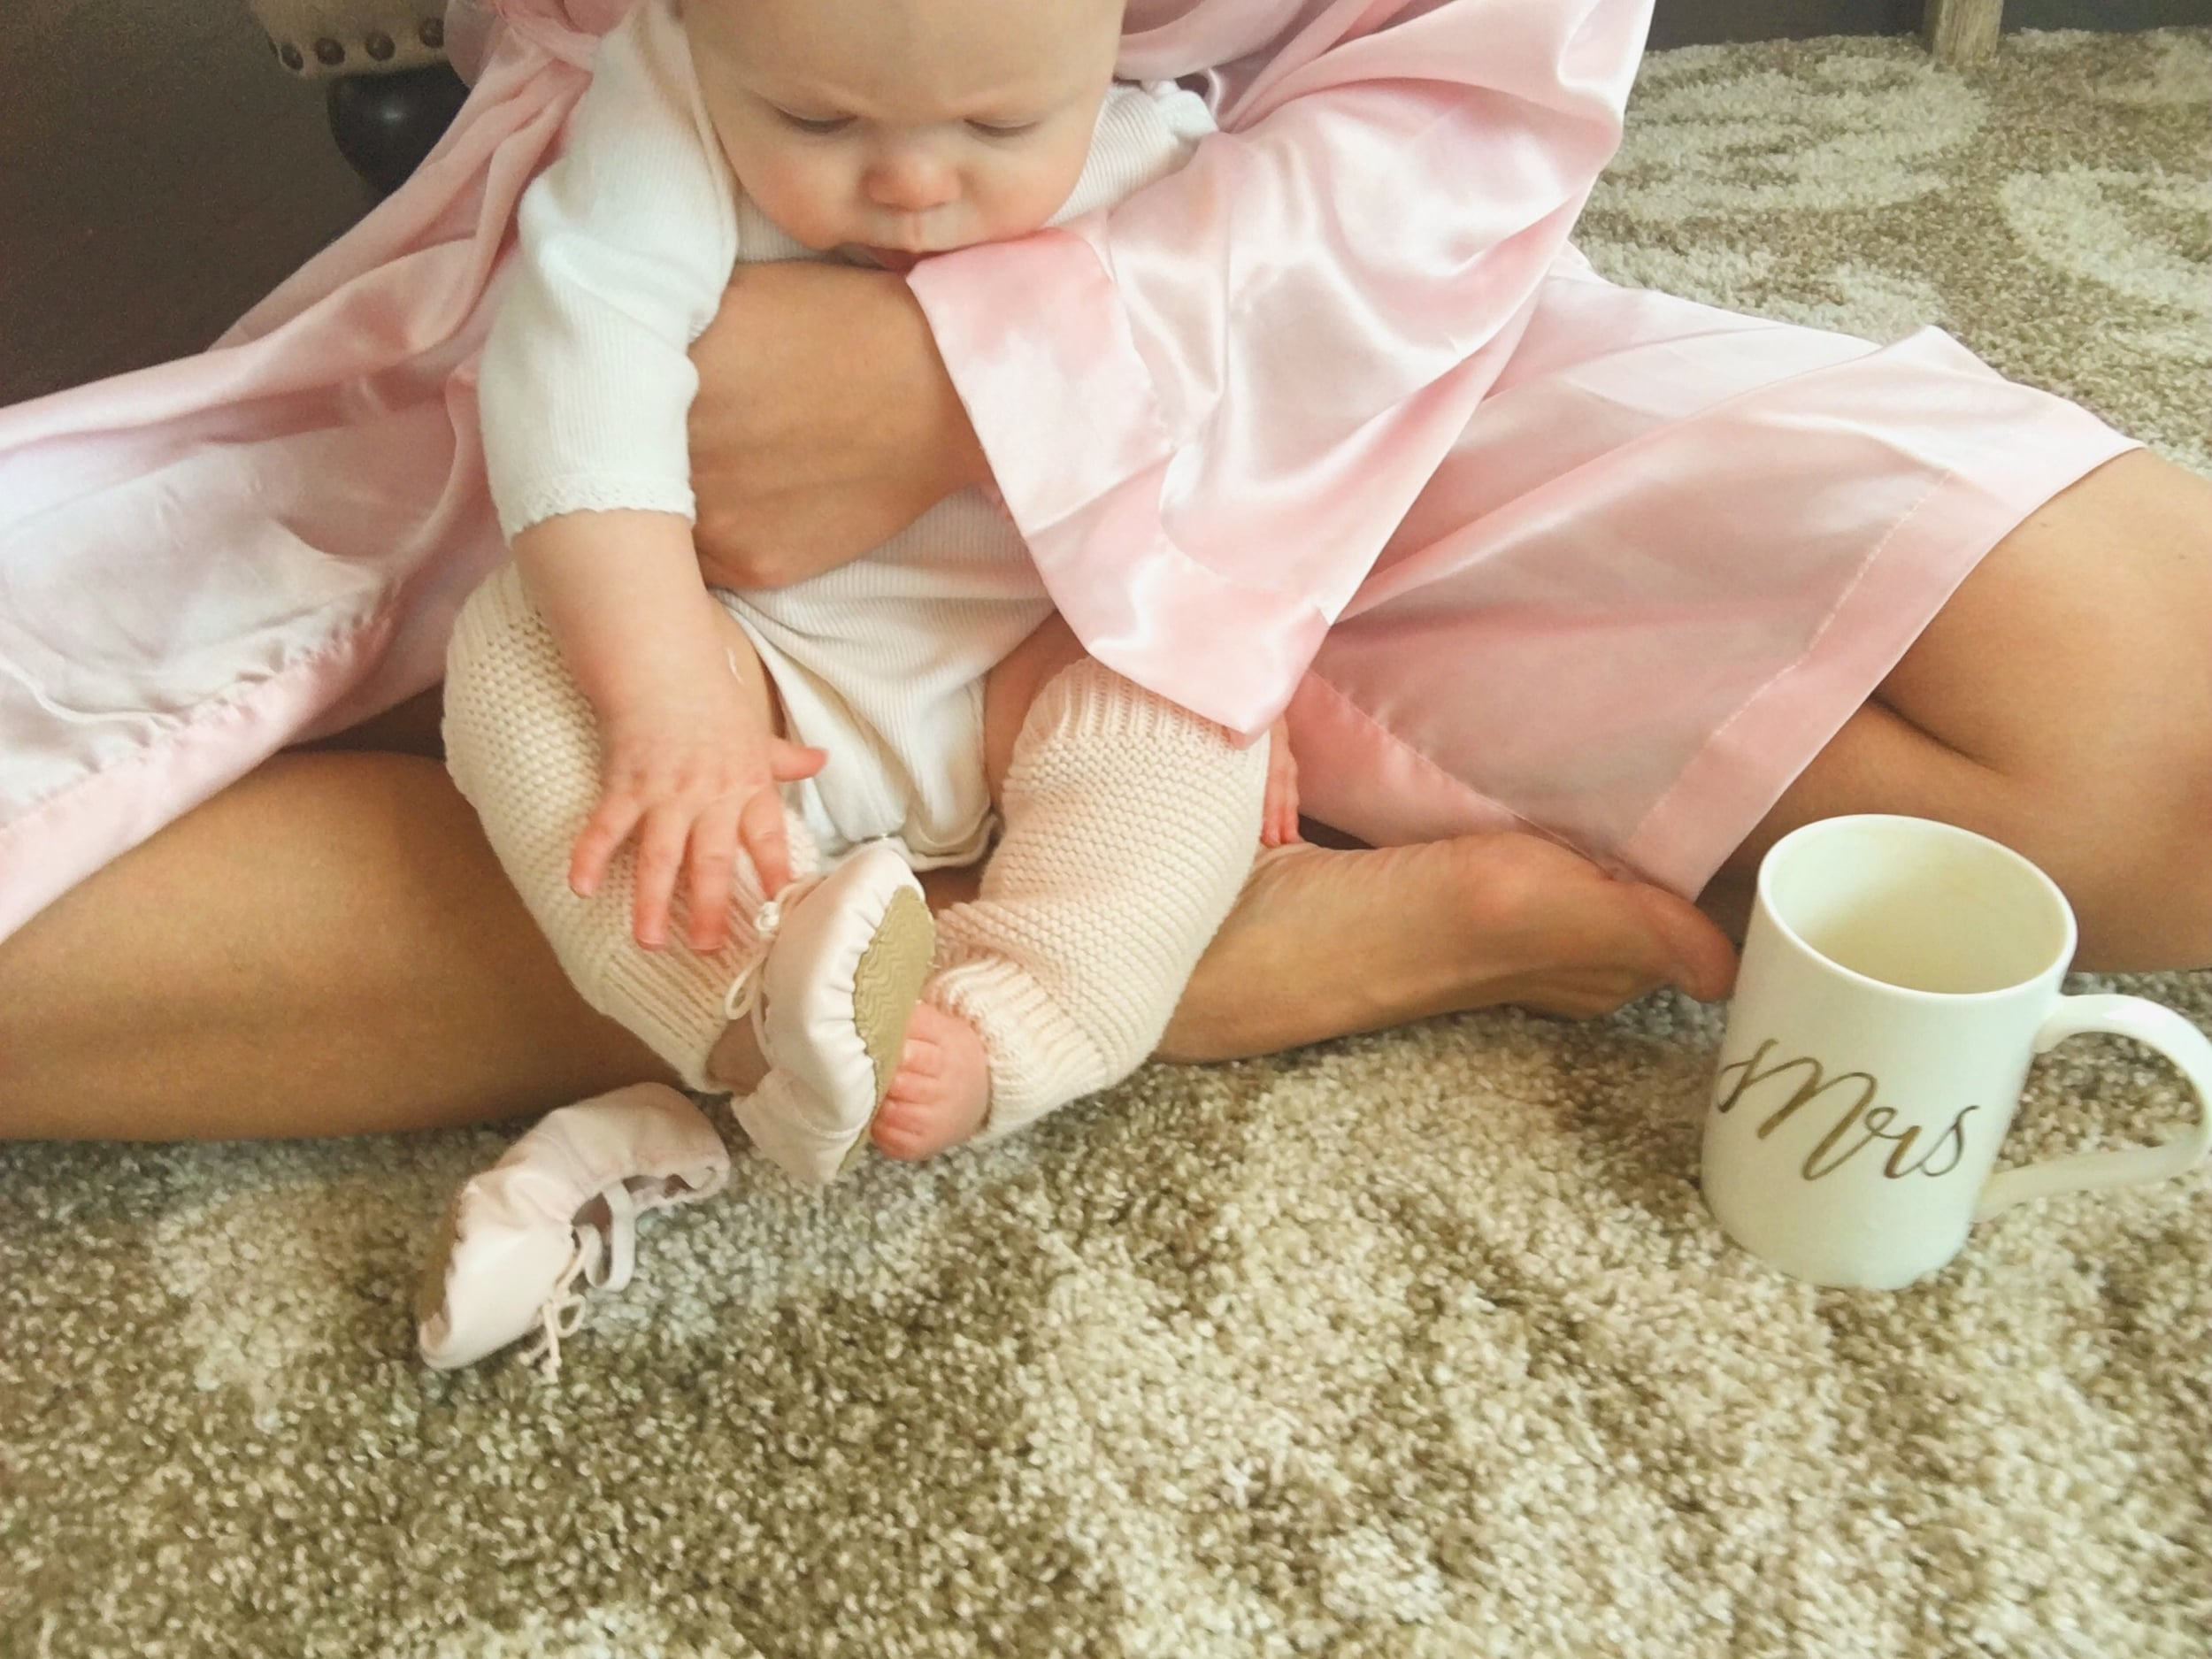 Baby Ballet Shoe Slippers - The Winemakers Wife. Wife. Mother. Lifestyle Blogger. Meagan Kludt.